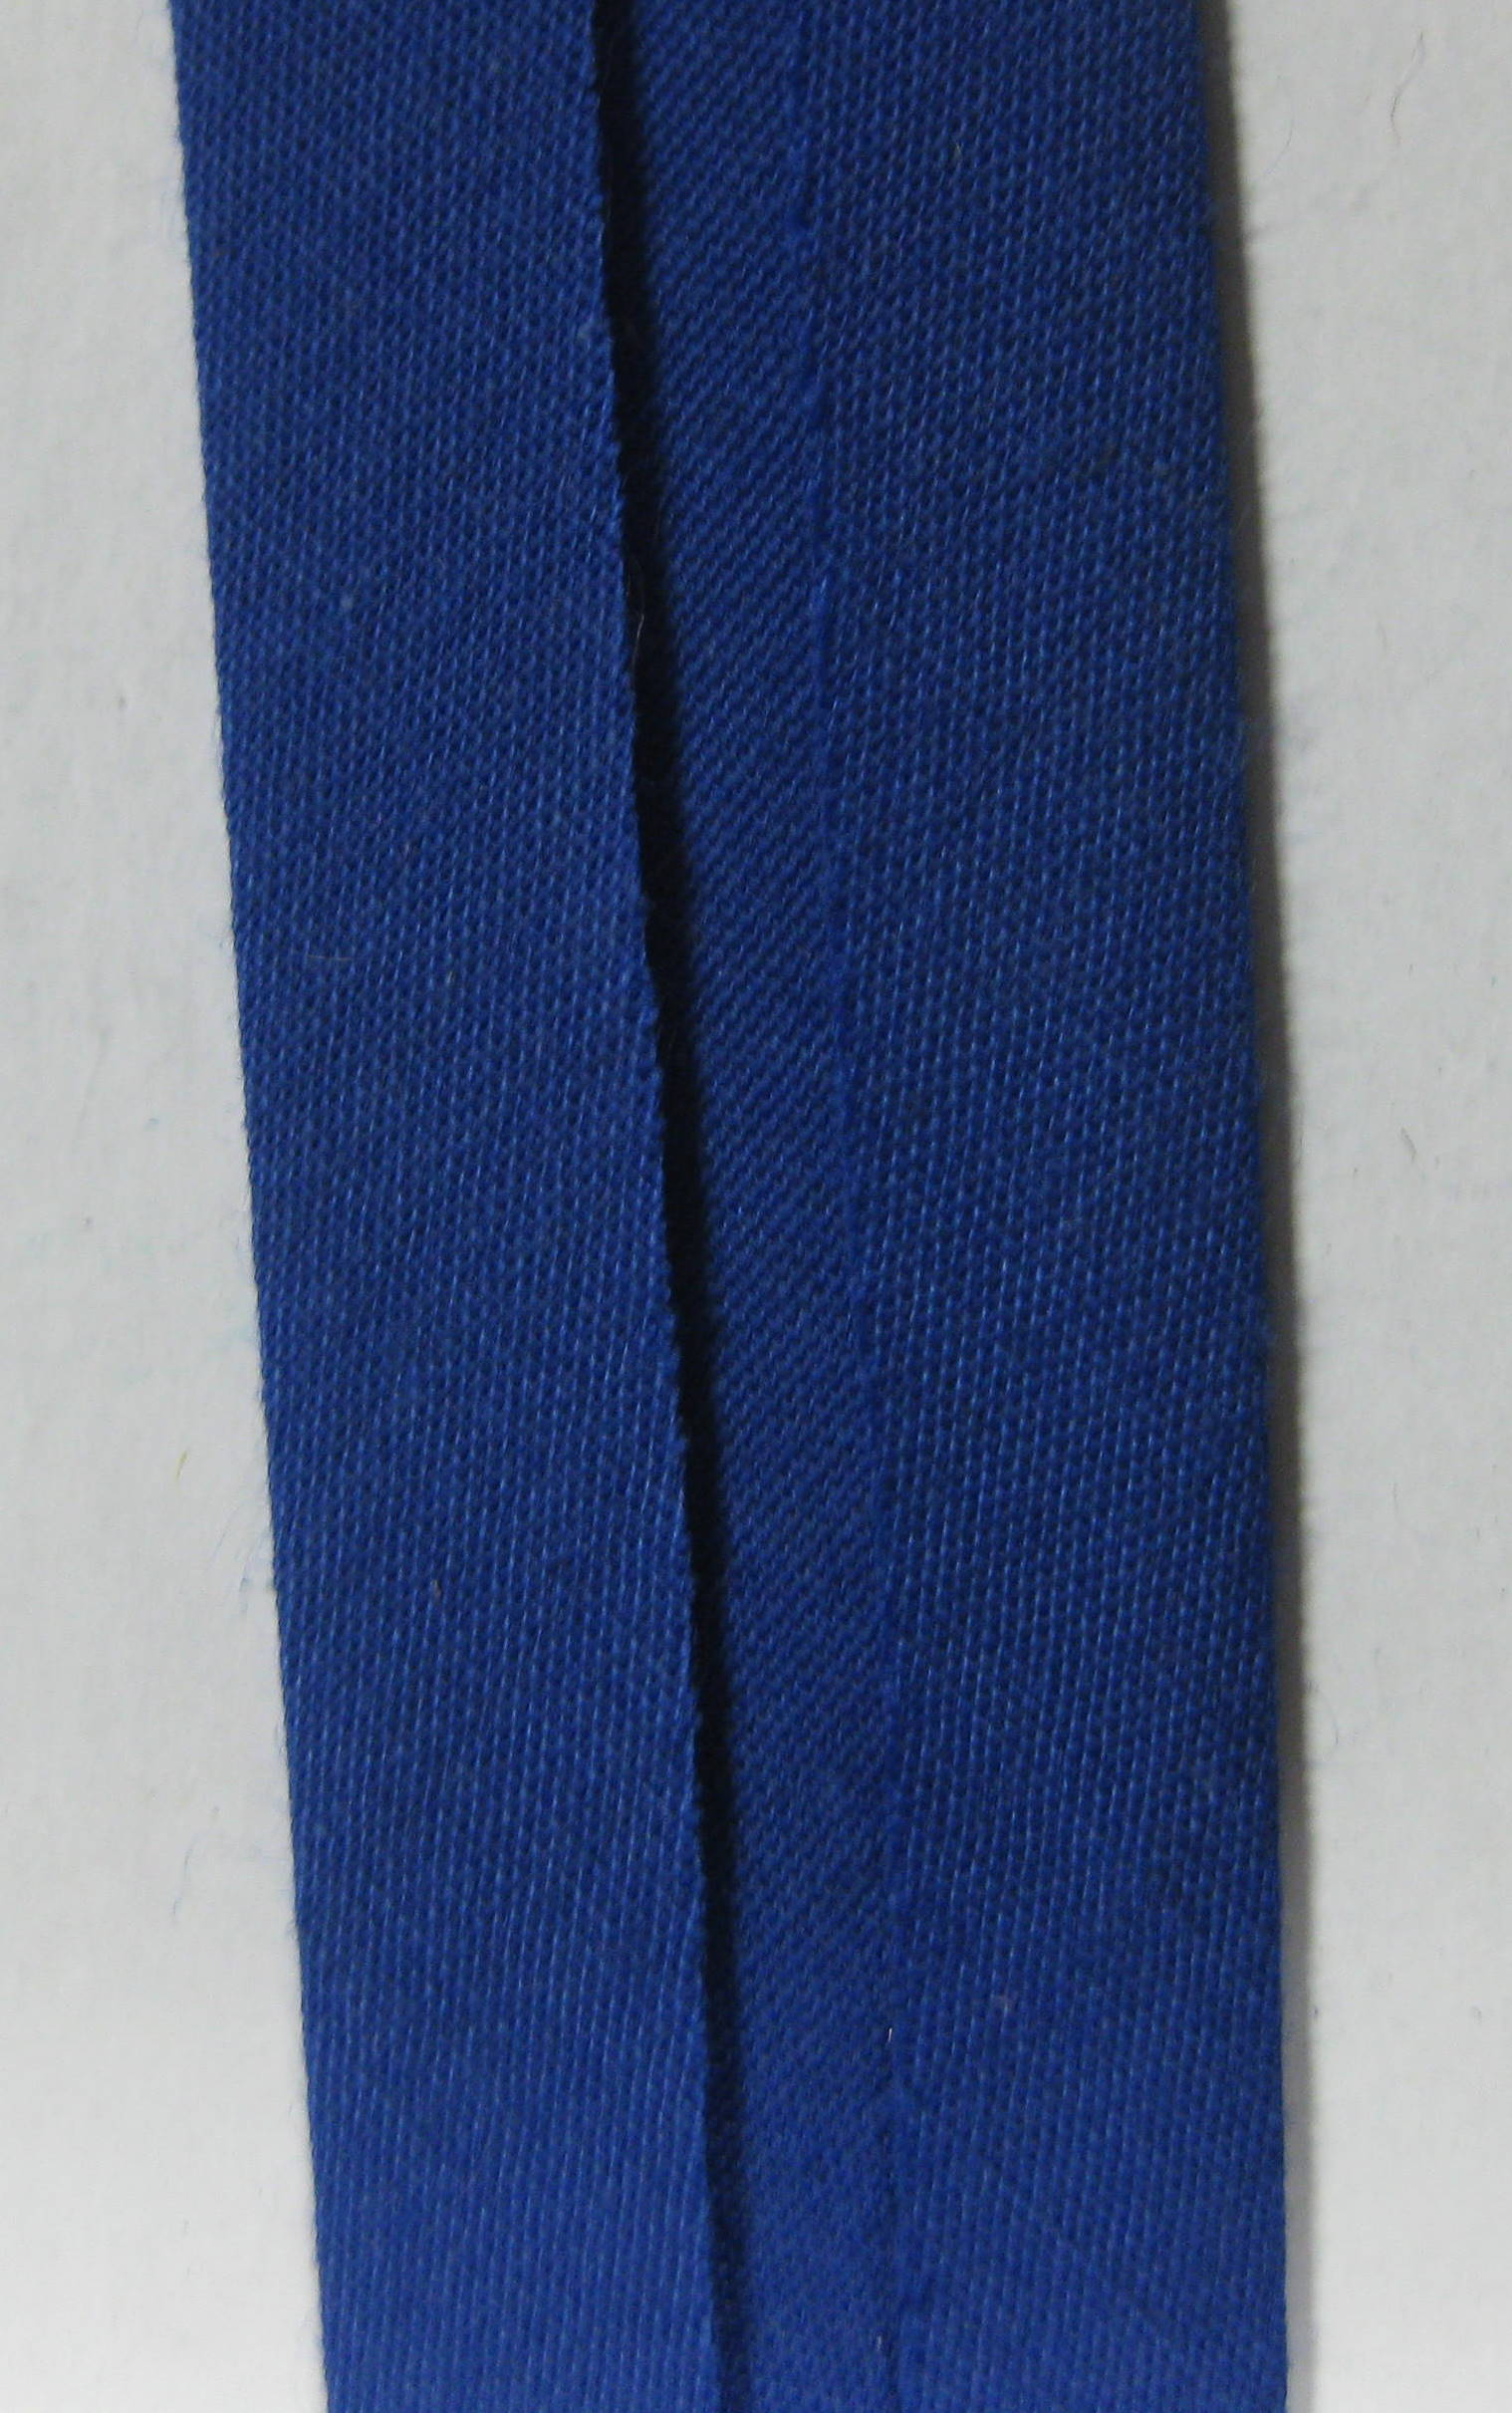 BIAS TAPE DARK BLUE